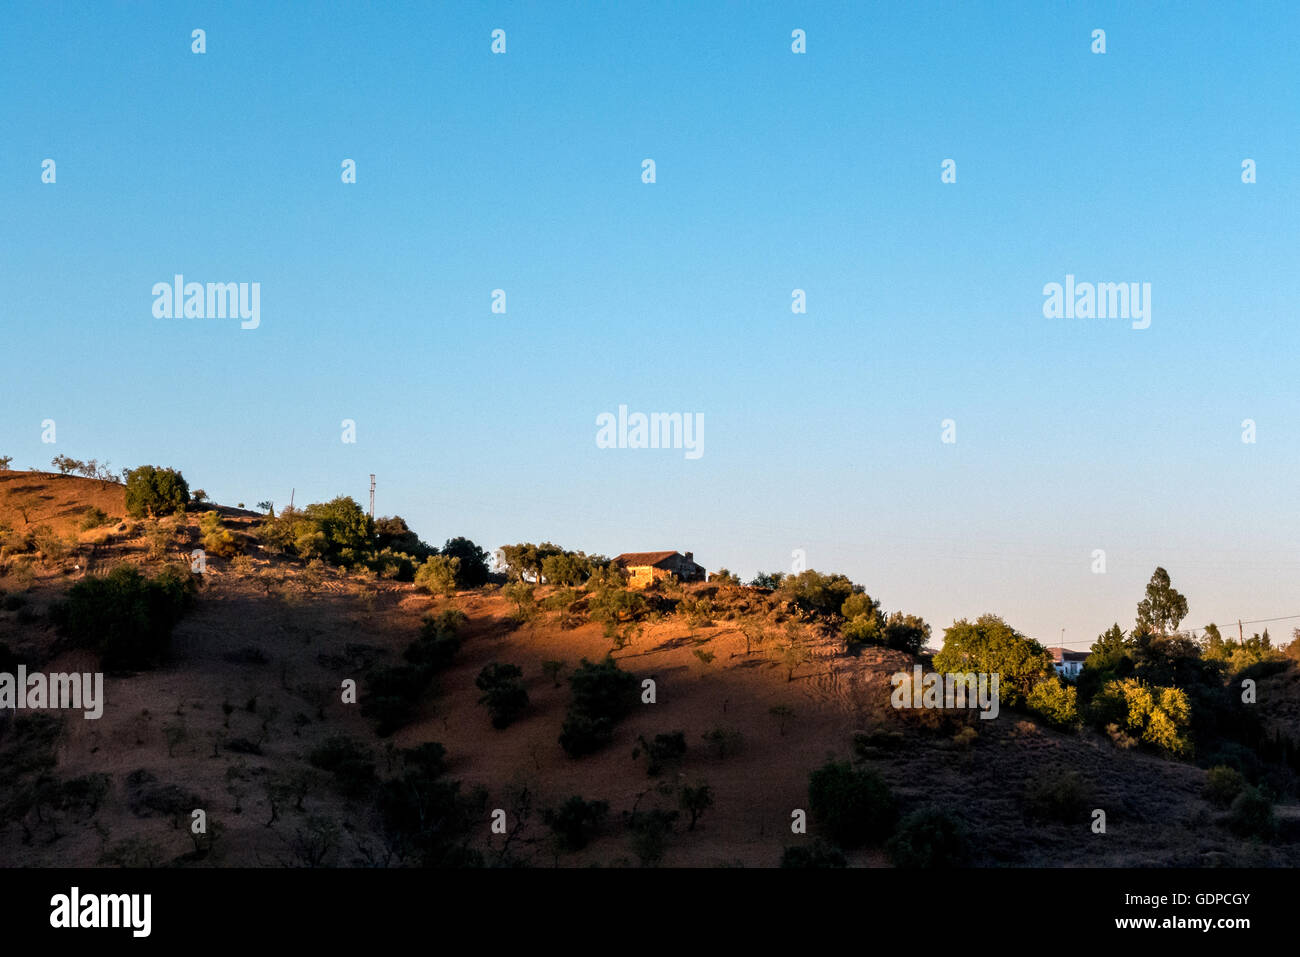 View across the mountains of Malaga province in southern Spain - Stock Image